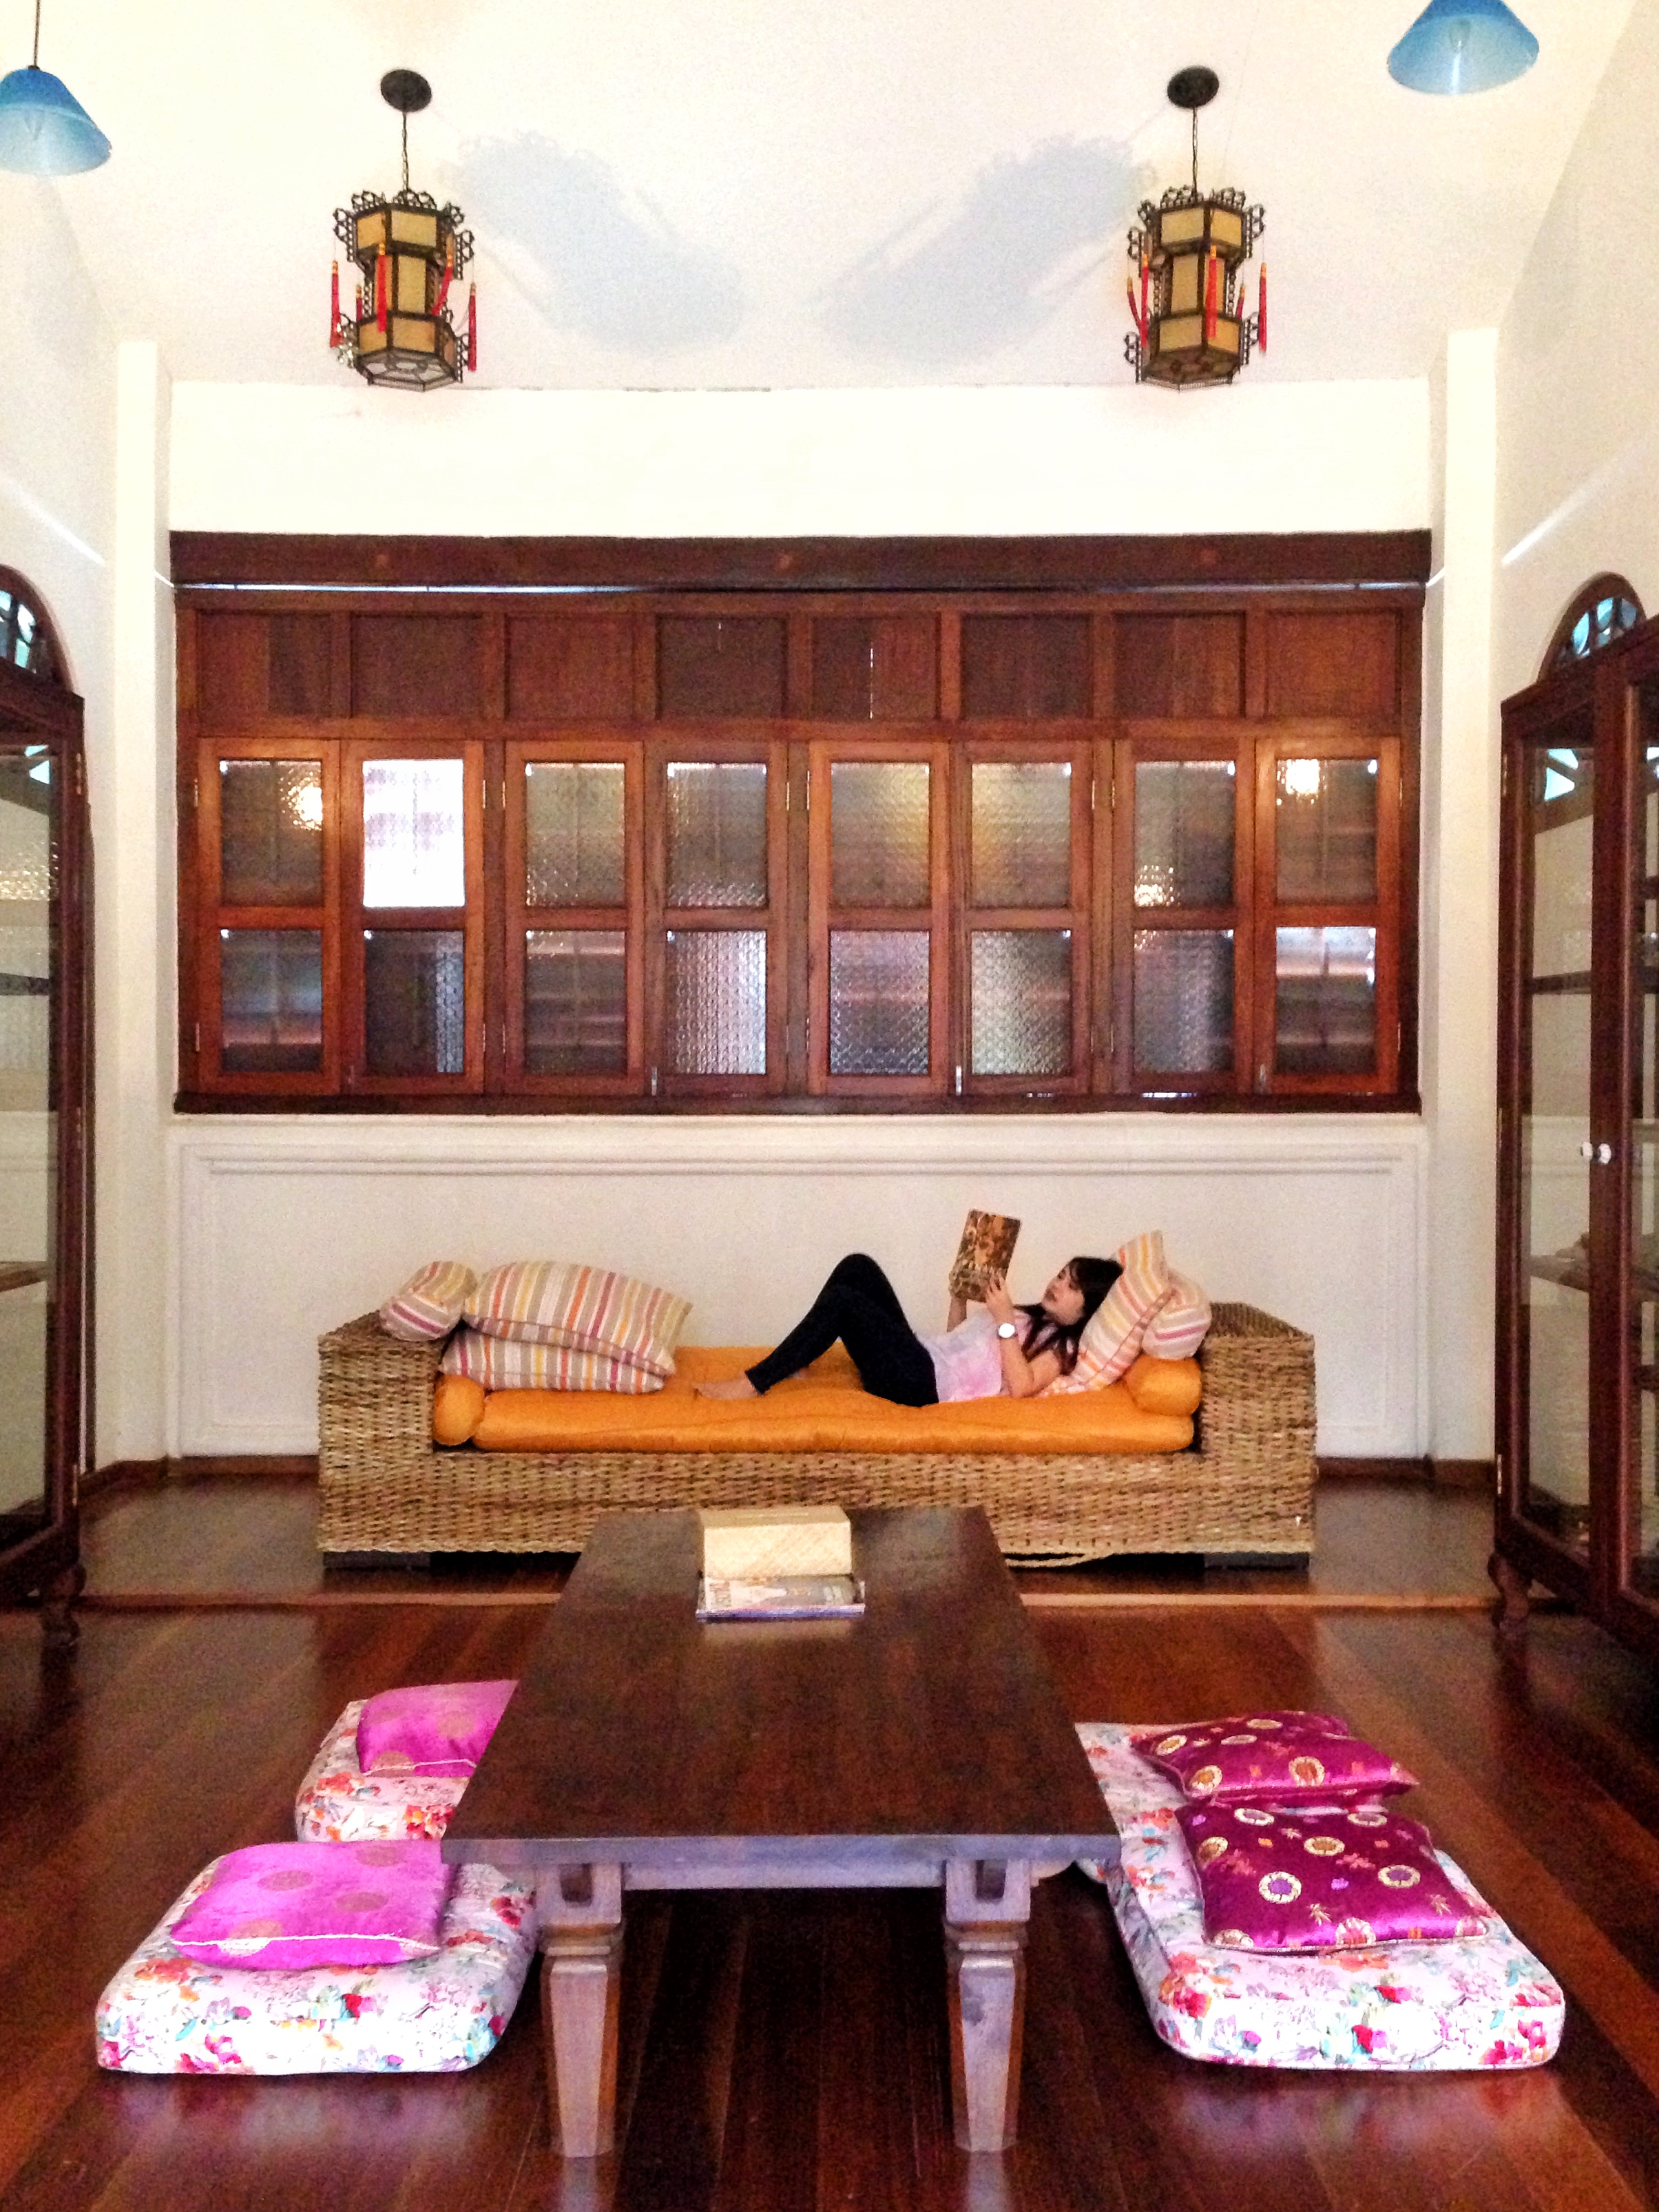 East Indies Mansion, Penang Review